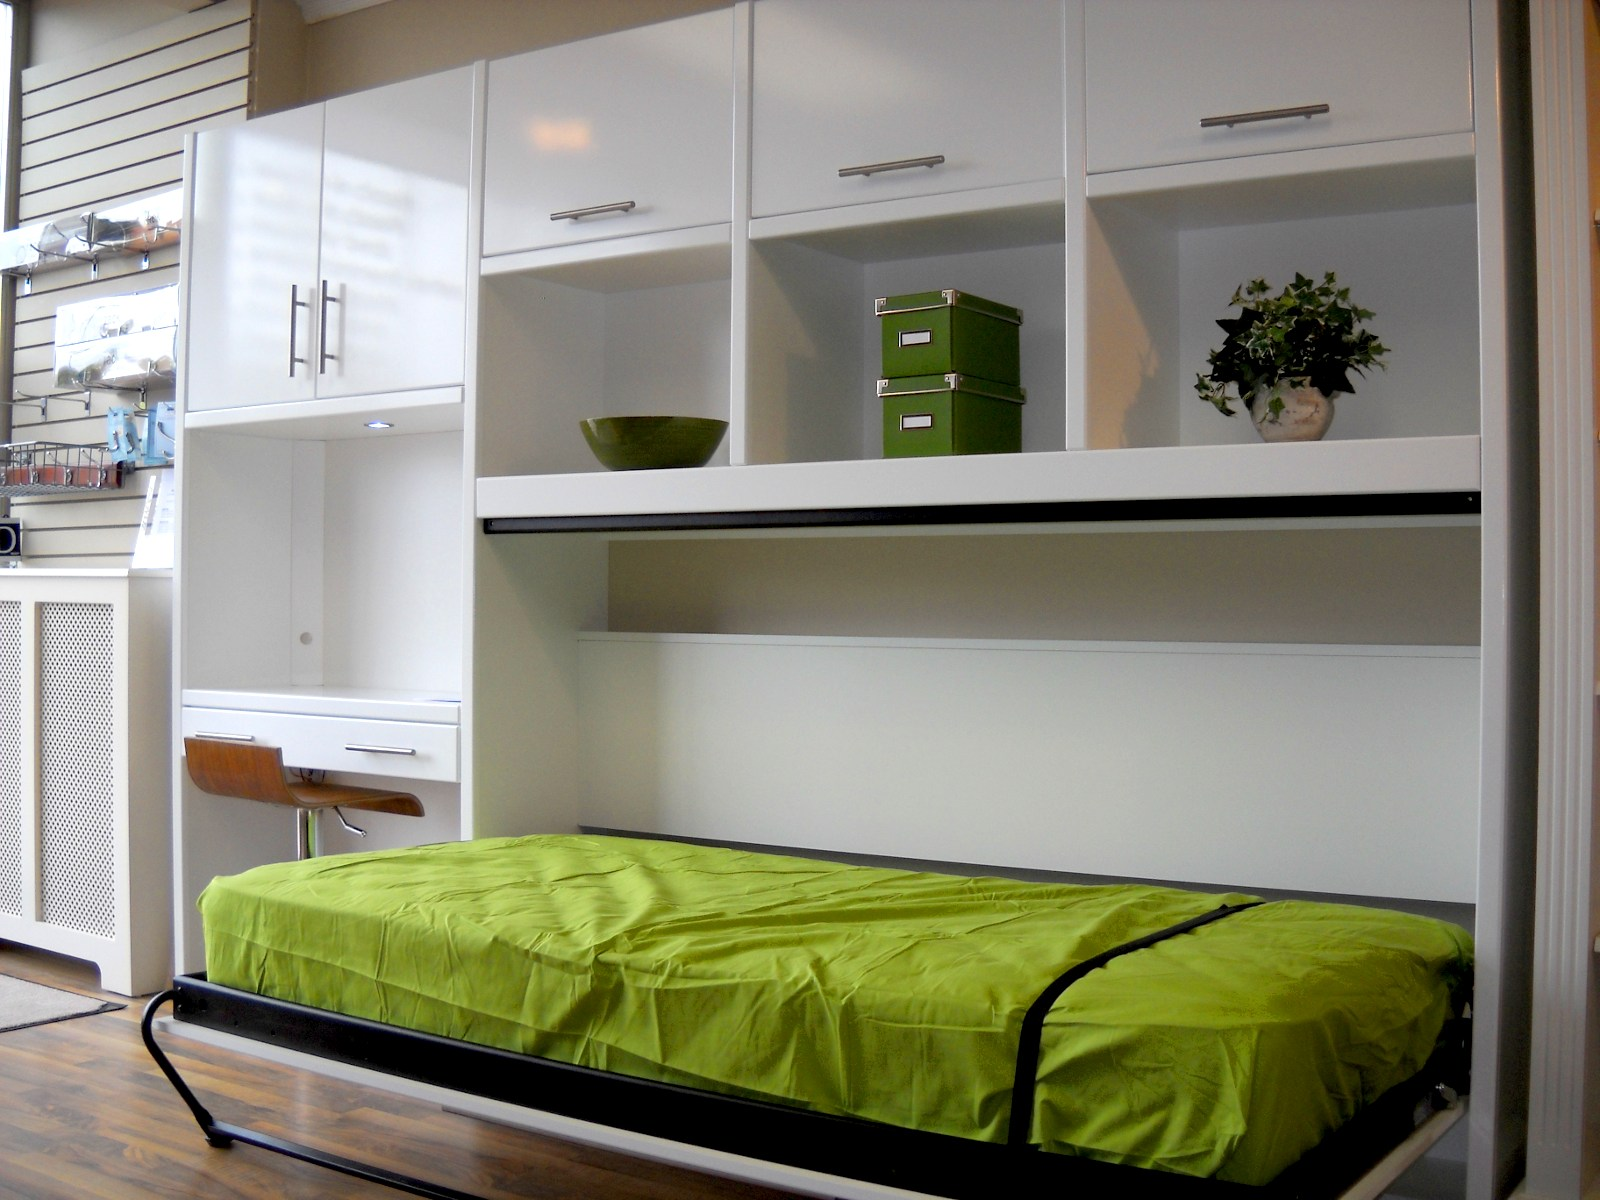 Closet Ideas For Small Bedrooms With Classy Look : Glossy White Side Modular Shelving Unit Combine With Storage Cabinet And Green Foldable Bed